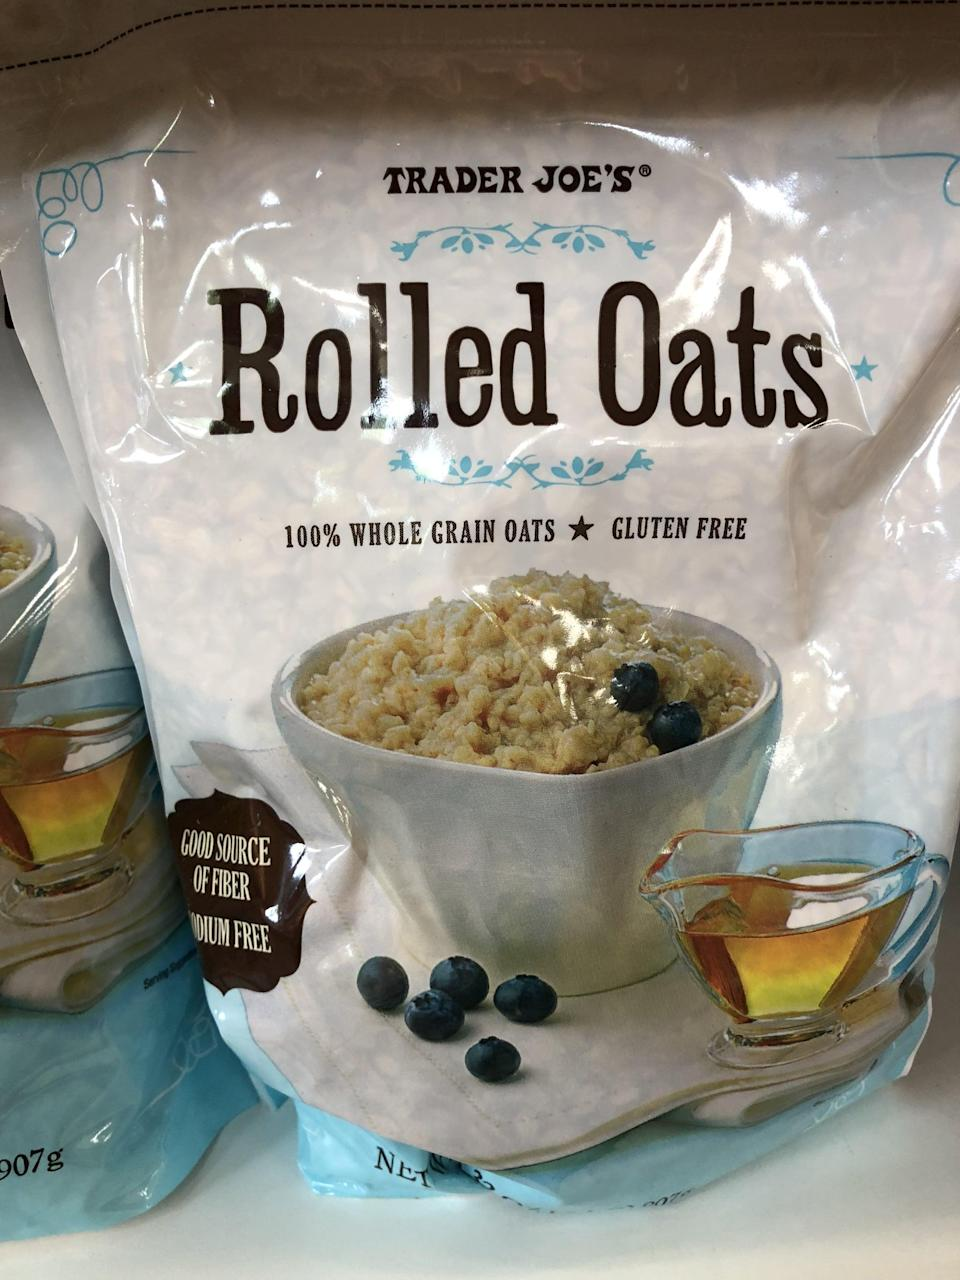 <p>Make a week's worth of overnight oats with a bag of this or cook up some protein bars to use as snacks for the week.</p>